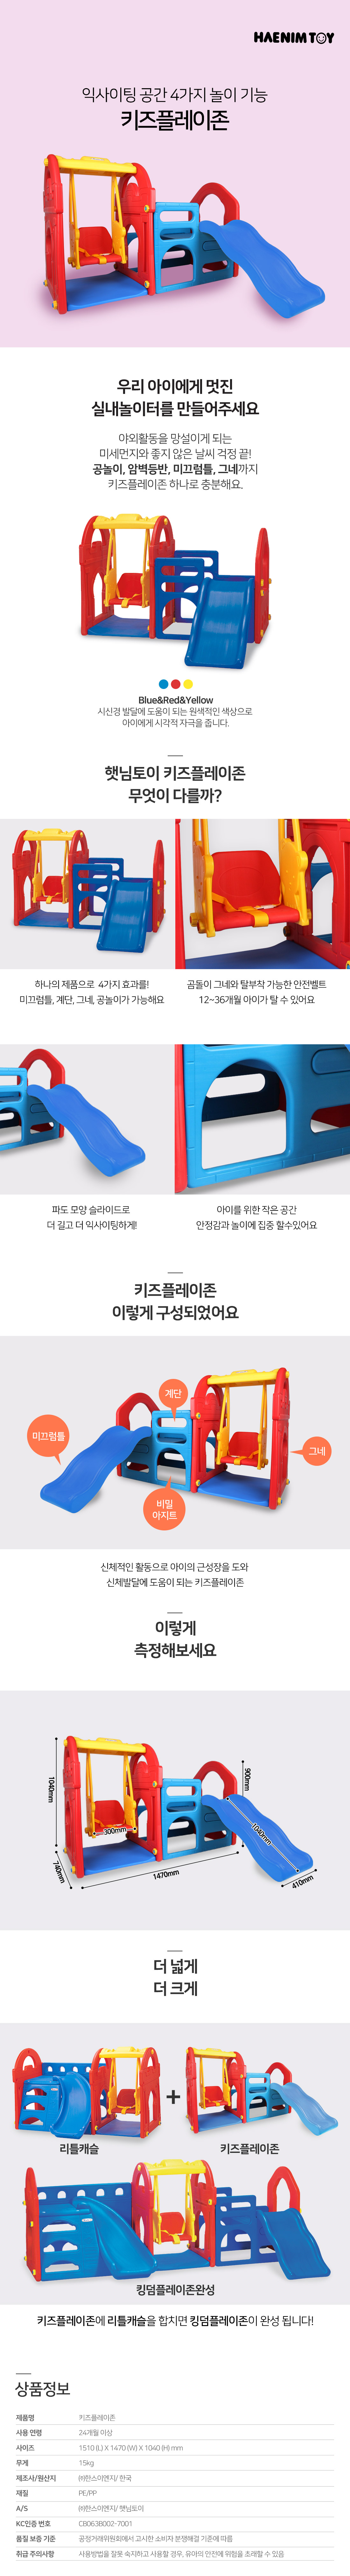 Haenim Toy Kids Play Zone (Korea) with Slide and Swing